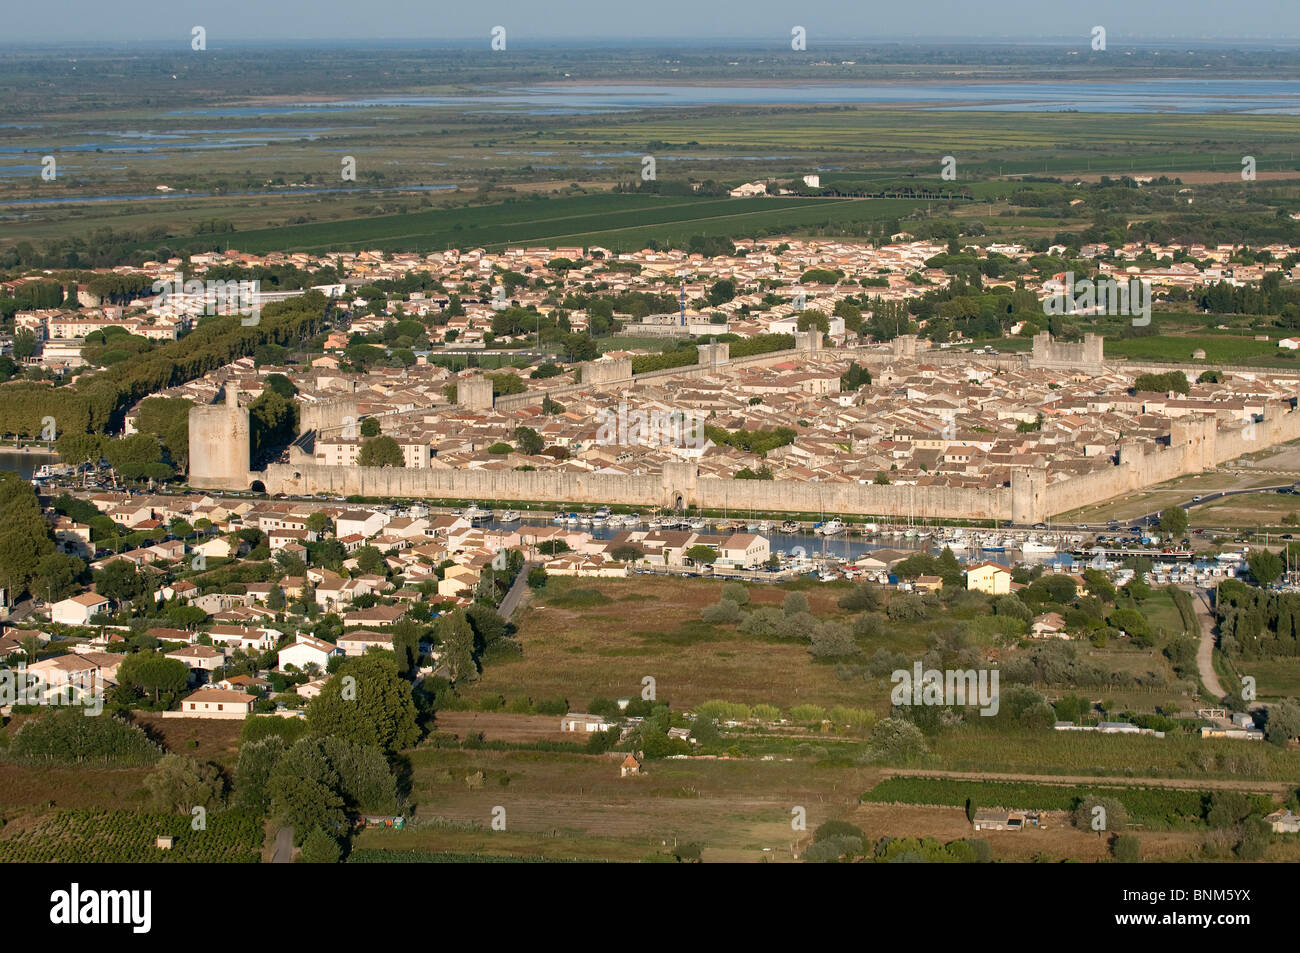 France Camargue Department Gard Aigues Mortes city old town aerial view city wall from above aerial photo Europe - Stock Image